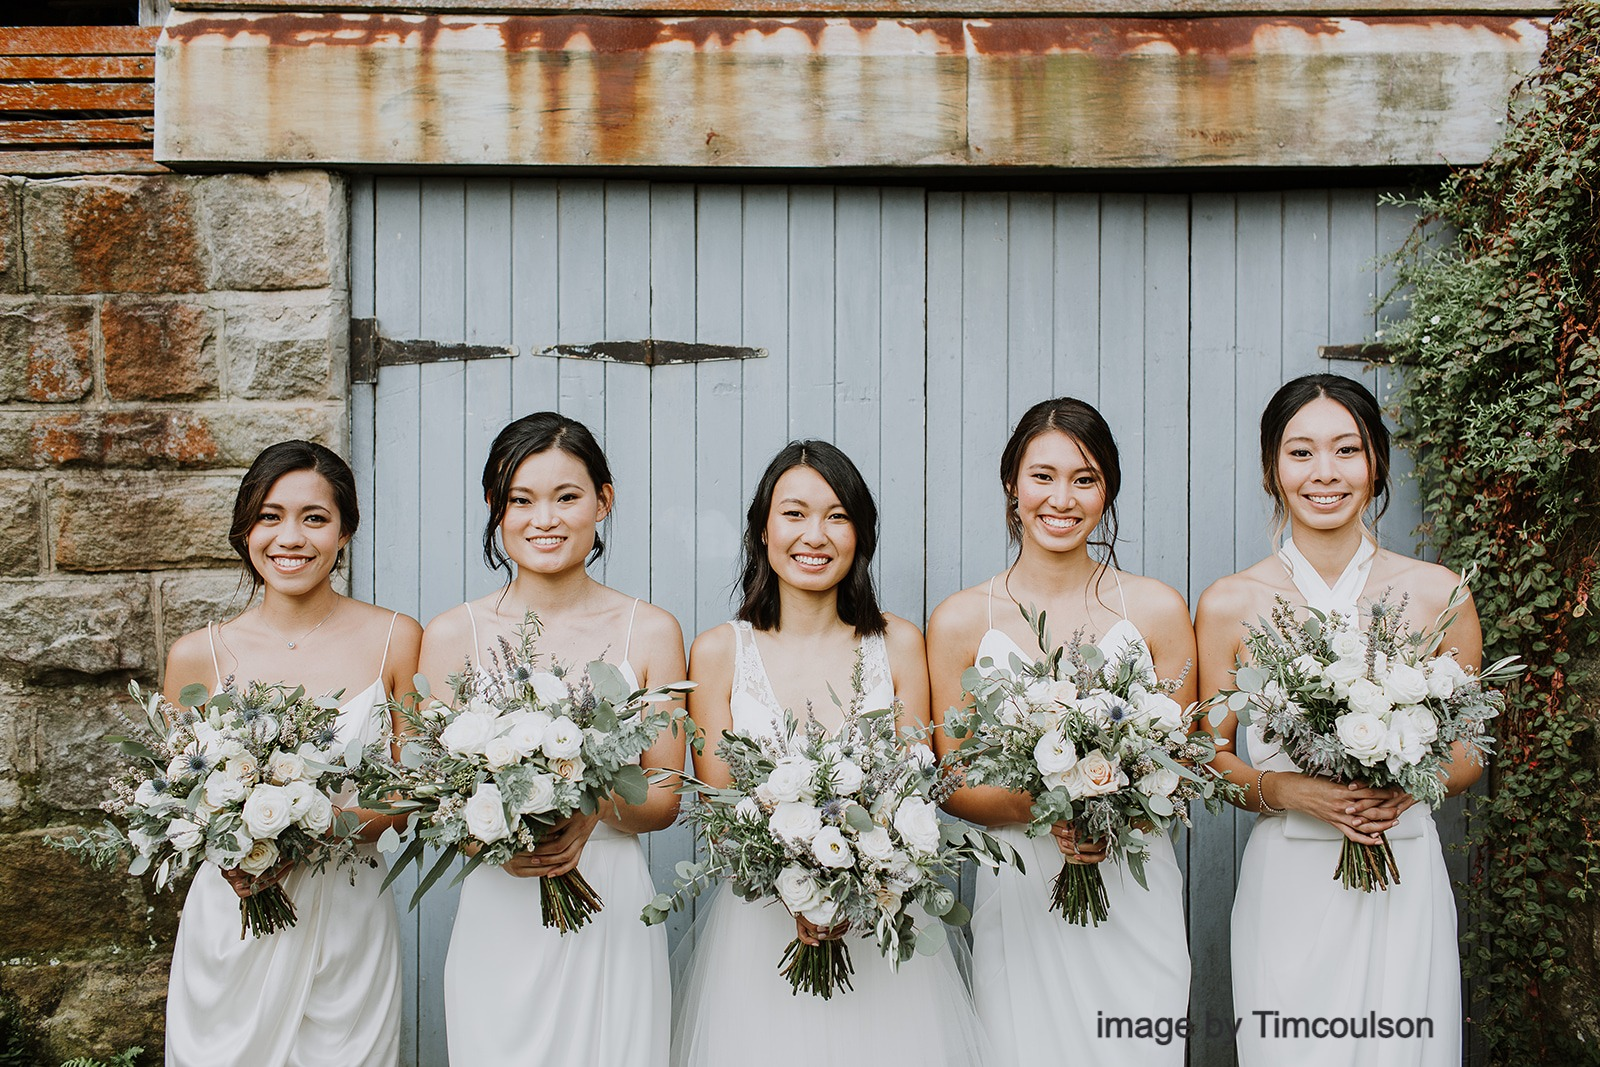 Sydney wedding photographer Timcoulson